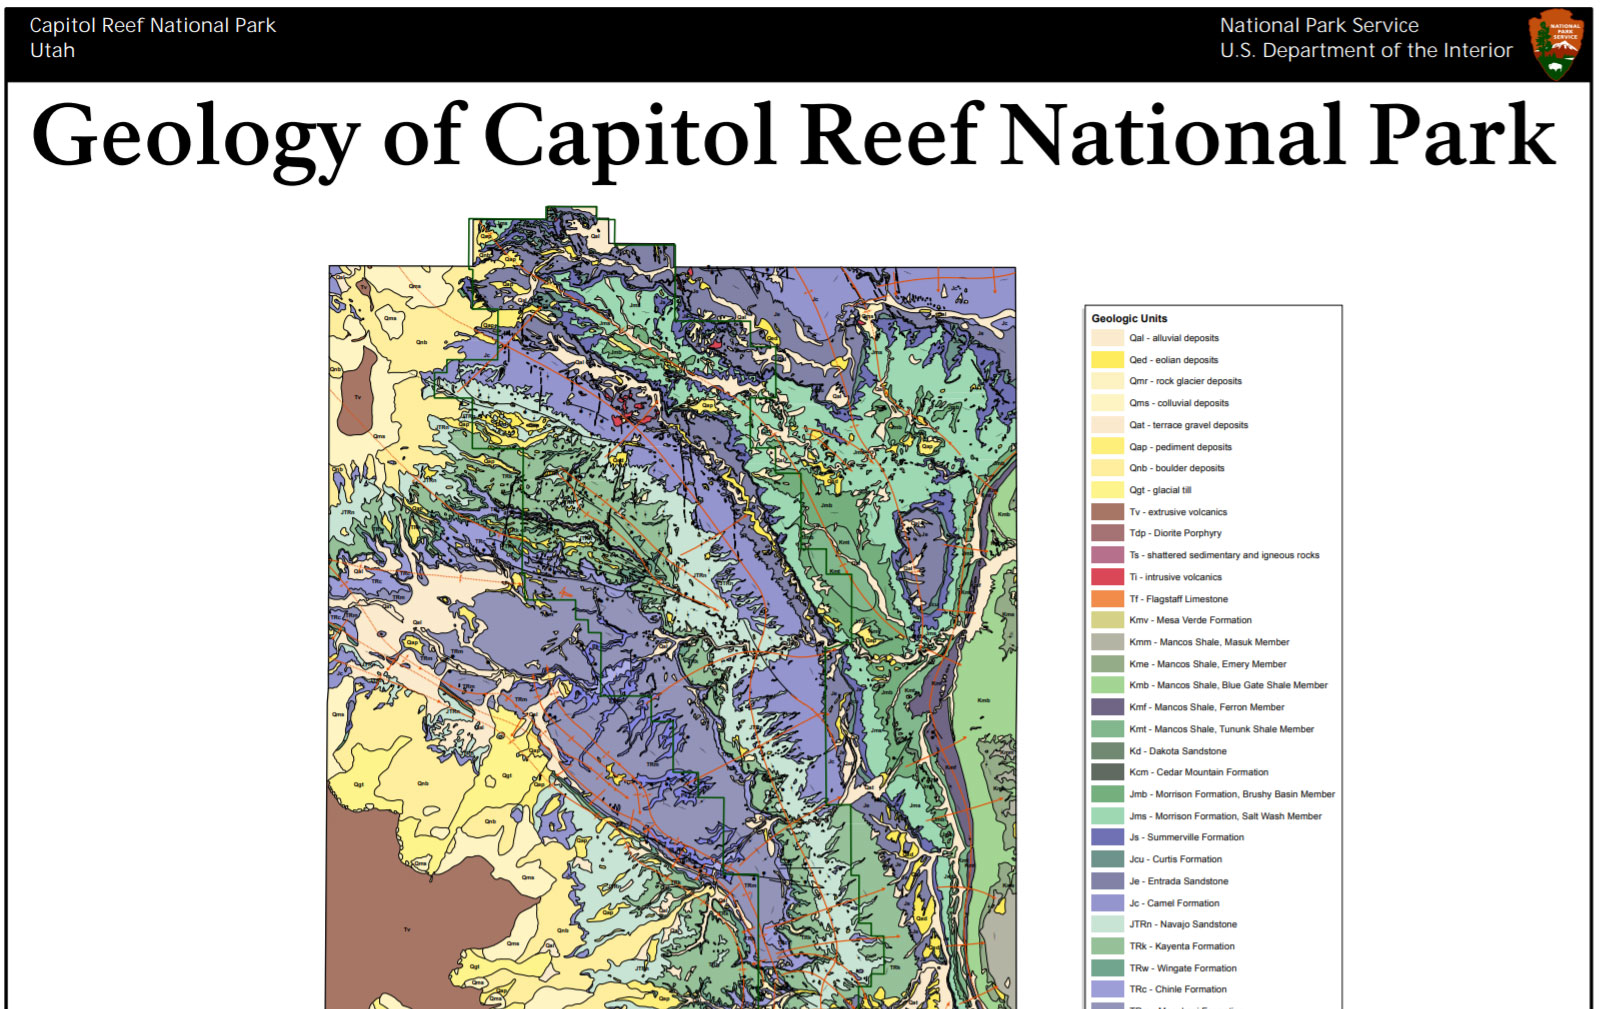 NPS Geodiversity Atlas—Capitol Reef National Park, Utah ... on yucca house national monument map, roosevelt park north dakota map, little bighorn battlefield national monument map, sequoia national park map, bryce canyon map, lake clark national park and preserve map, valley of fire state park map, kings canyon national park map, dead horse point state park map, hickman bridge capitol reef map, organ pipe cactus national monument map, lake powell map, monument valley map, chaco culture national historical park map, denali national park and preserve map, zion park shuttle map, u.s. capitol map, hawaii volcanoes national park map, canyon de chelly national monument map, canada national parks map,